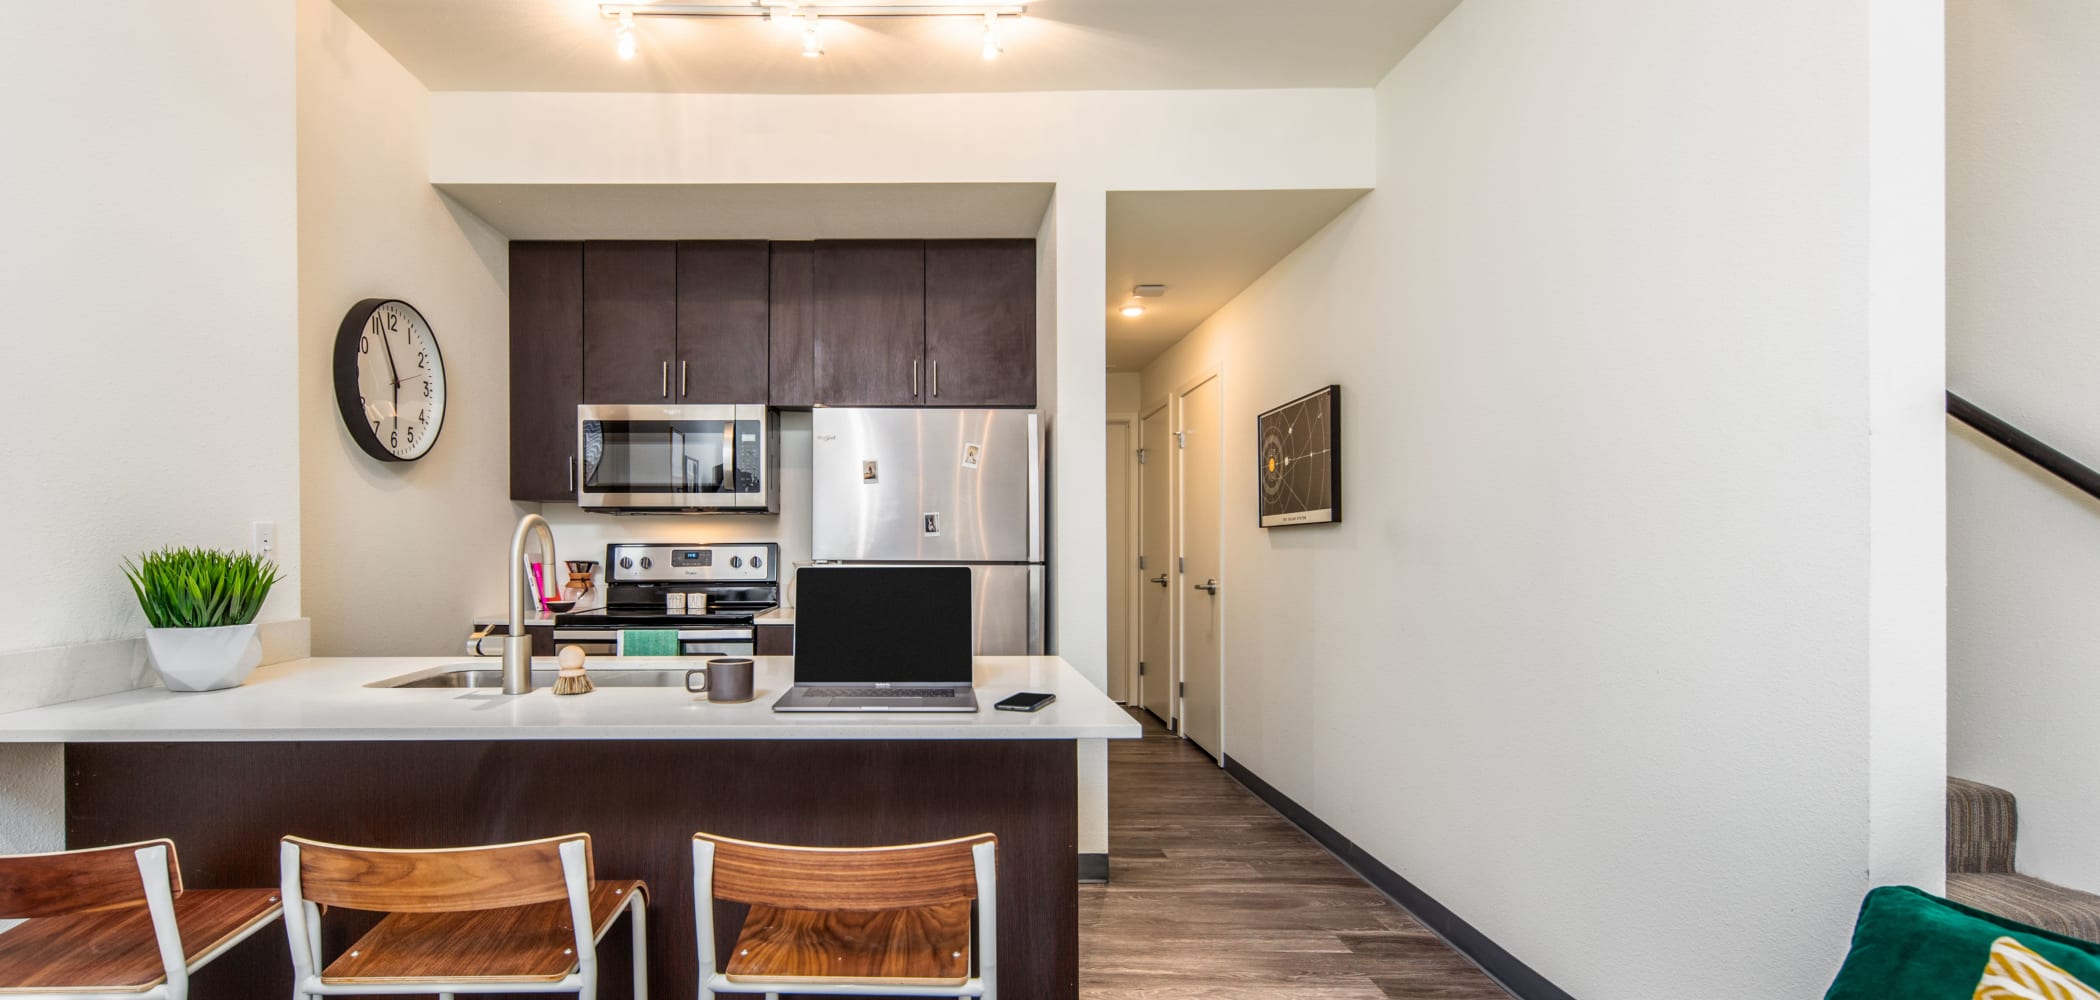 Bright, spacious kitchen at IDENTITY Moscow in Moscow, Idaho